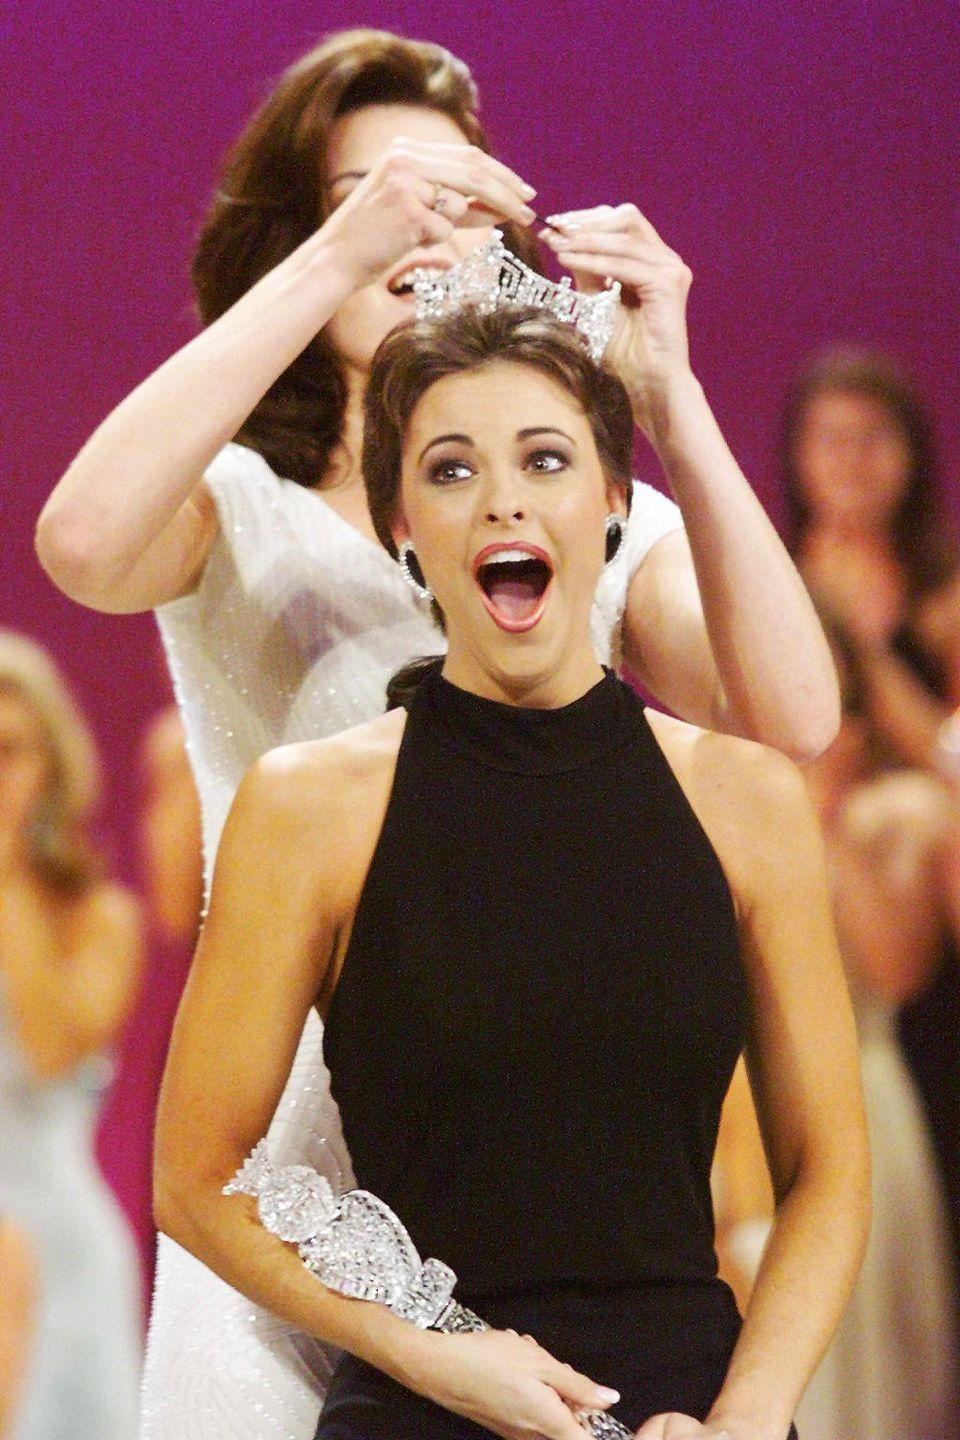 <p>After years of glitter and beads, Virginia's Nicole Johnson won the crown in a simple black gown. The entire look—down to her crown and diamond earrings—drew inspiration from Audrey Hepburn in <em>Breakfast at Tiffany's</em>.</p>